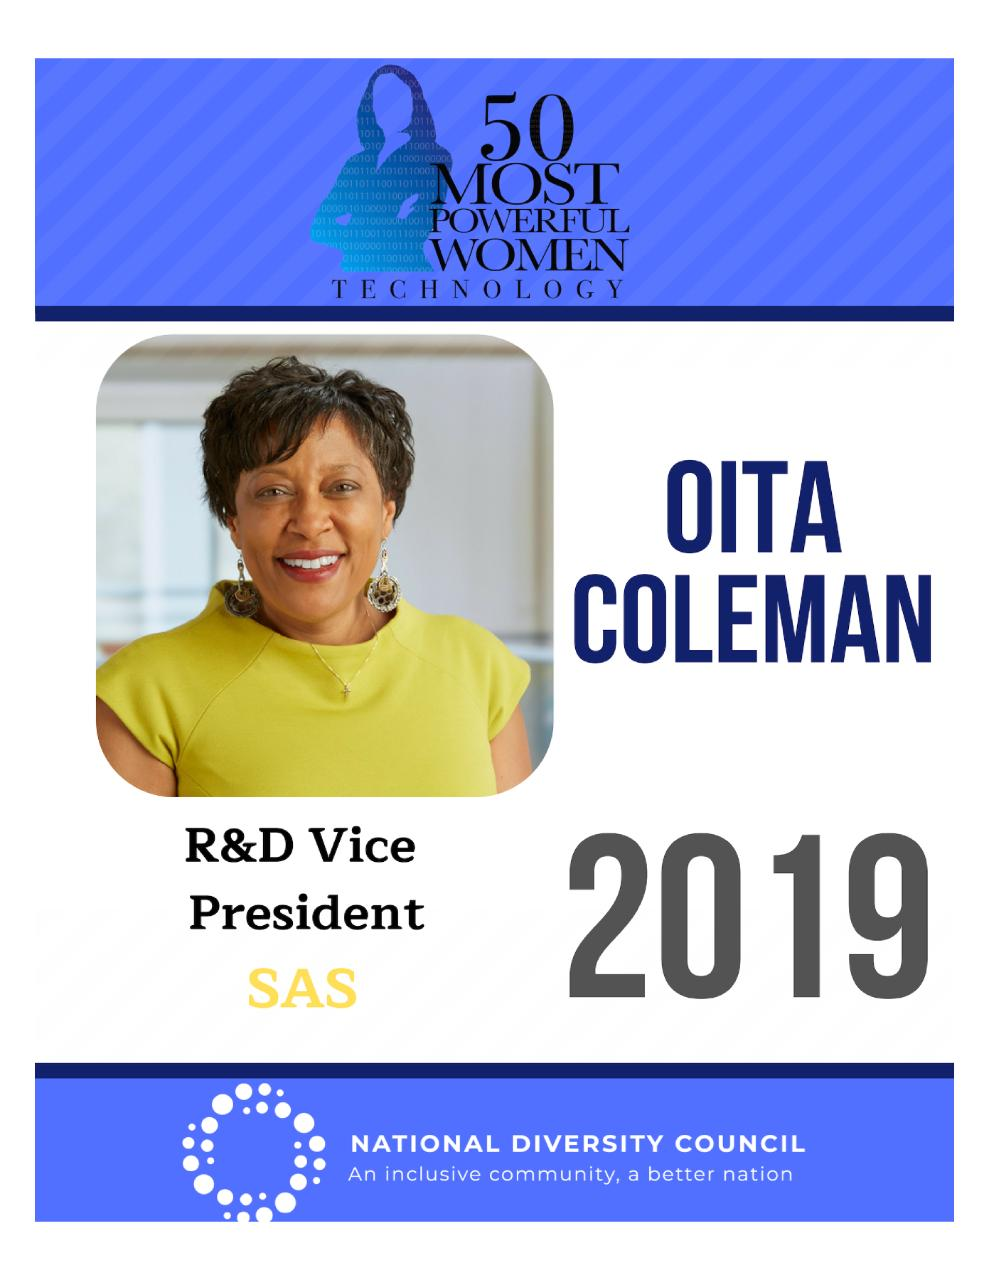 National Diversity Council Award for Oita Coleman>50 Most Powerful Women in Technology